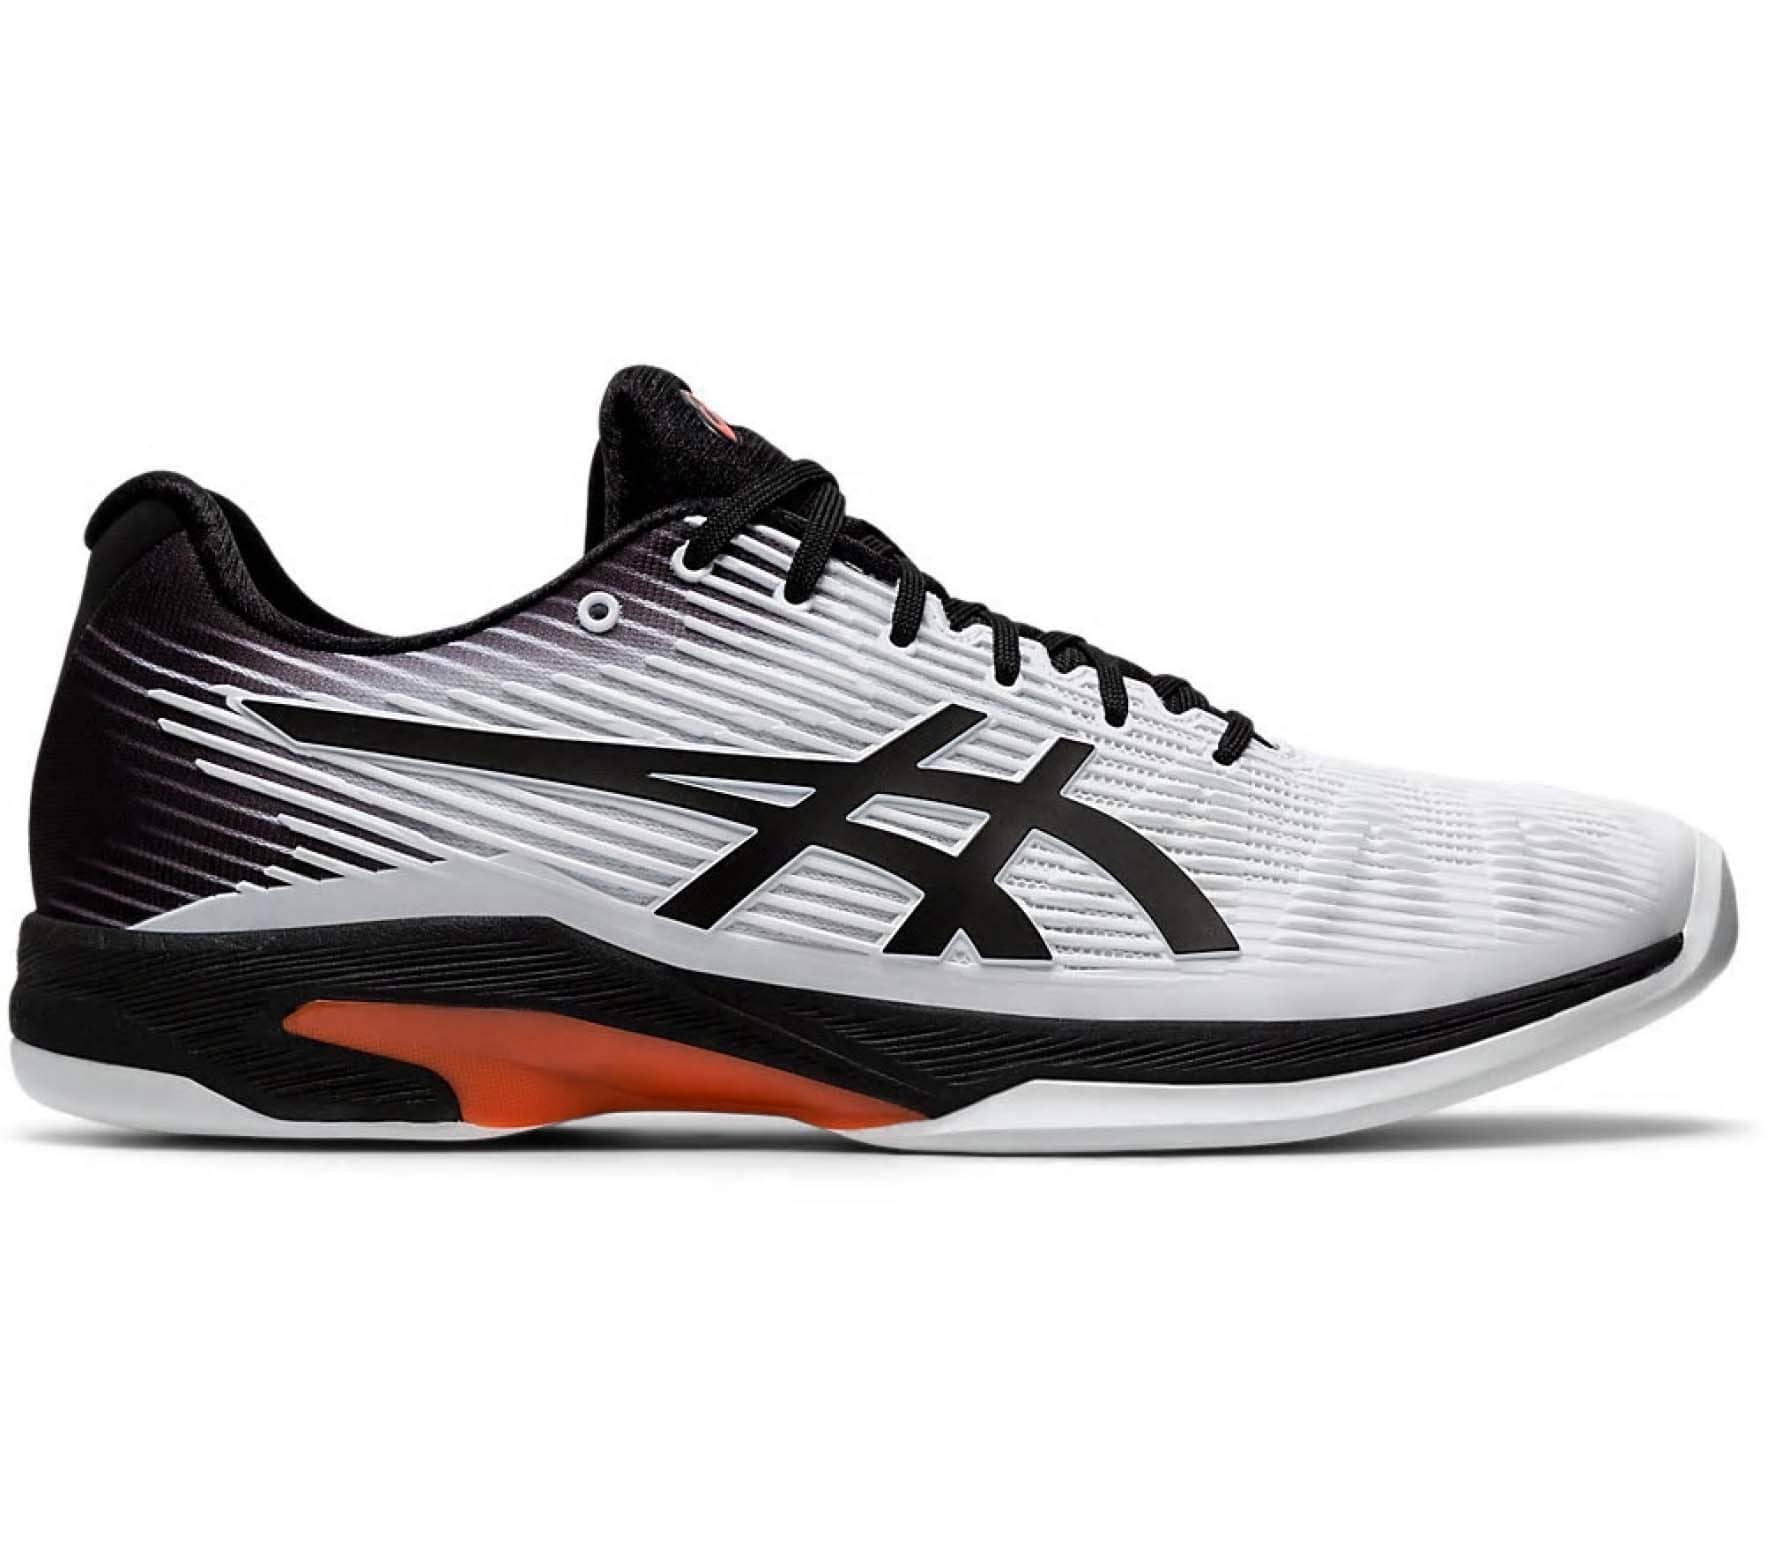 SOLUTION SPEED FF INDOOR Herren Tennisschuh